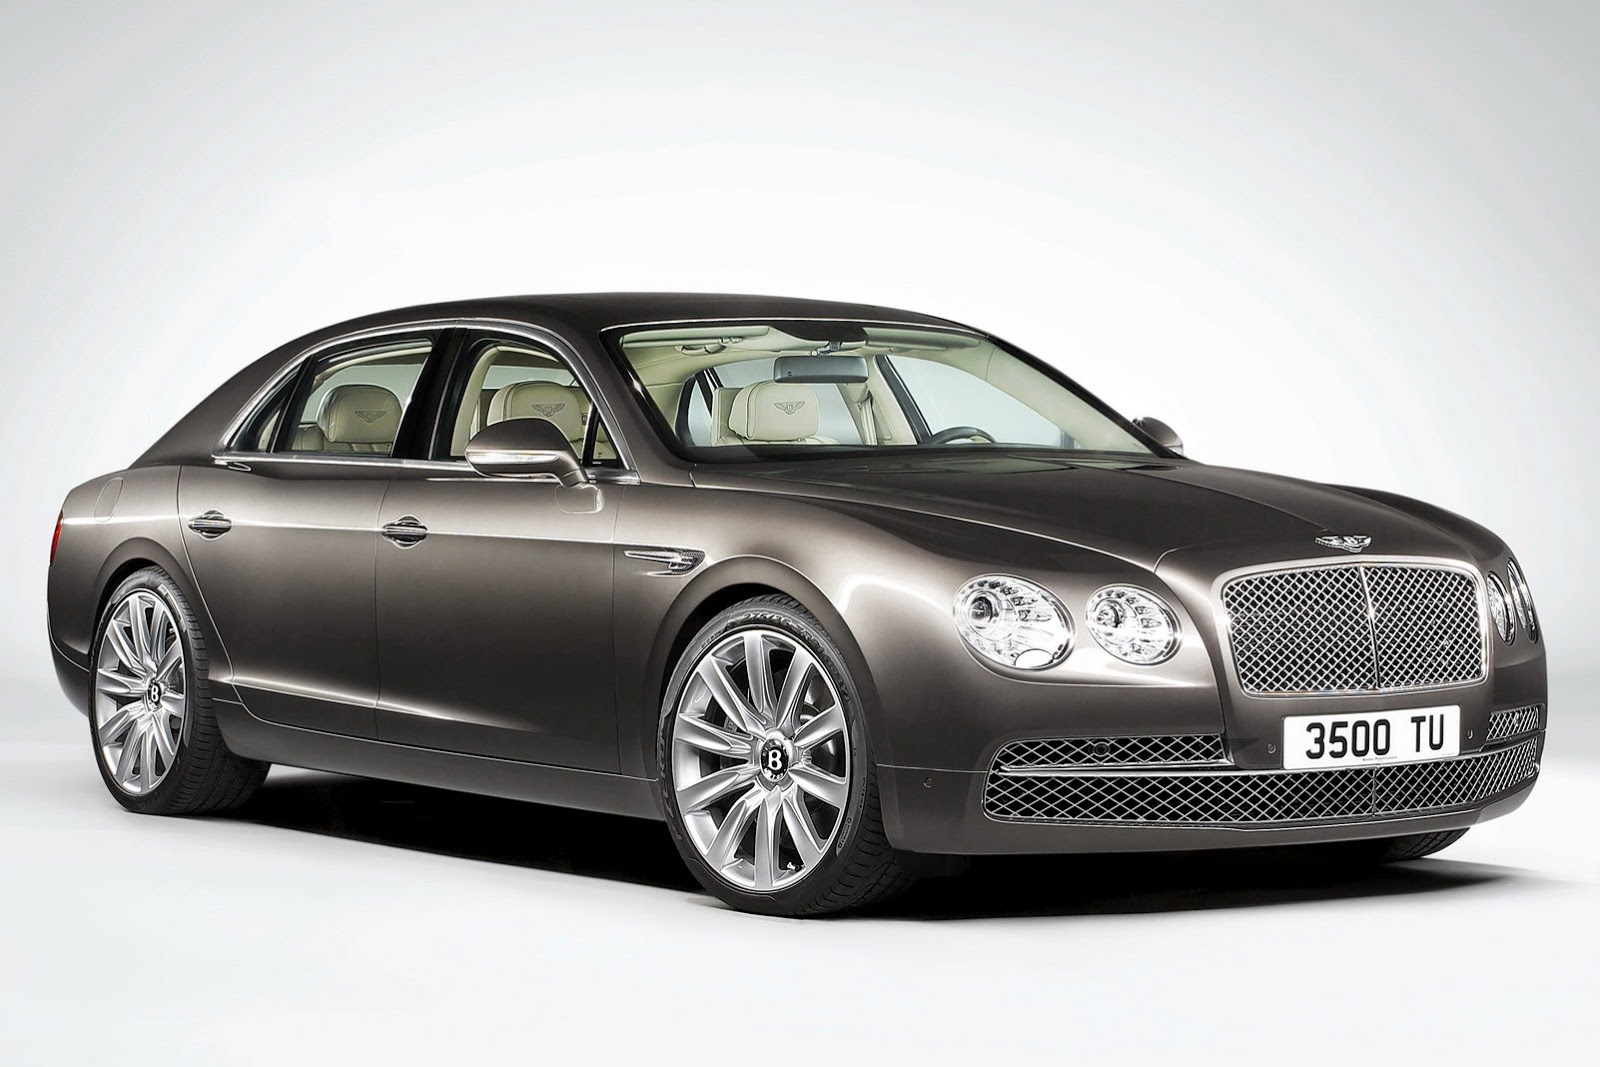 The Wait Is Over: New Bentley Flying Spur Revealed